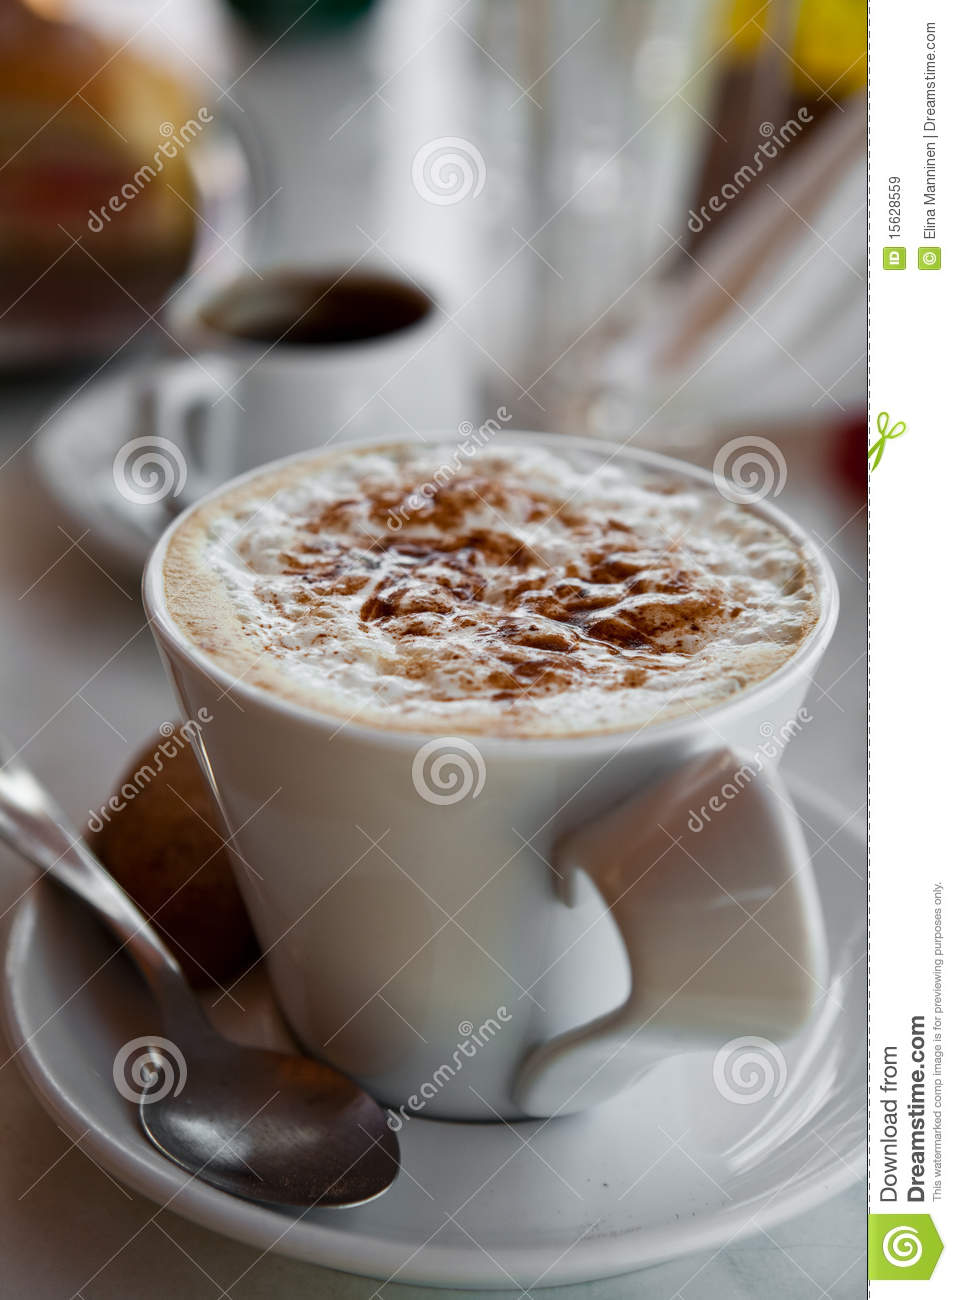 Delicious Hot Chocolate Royalty Free Stock Images - Image: 15628559